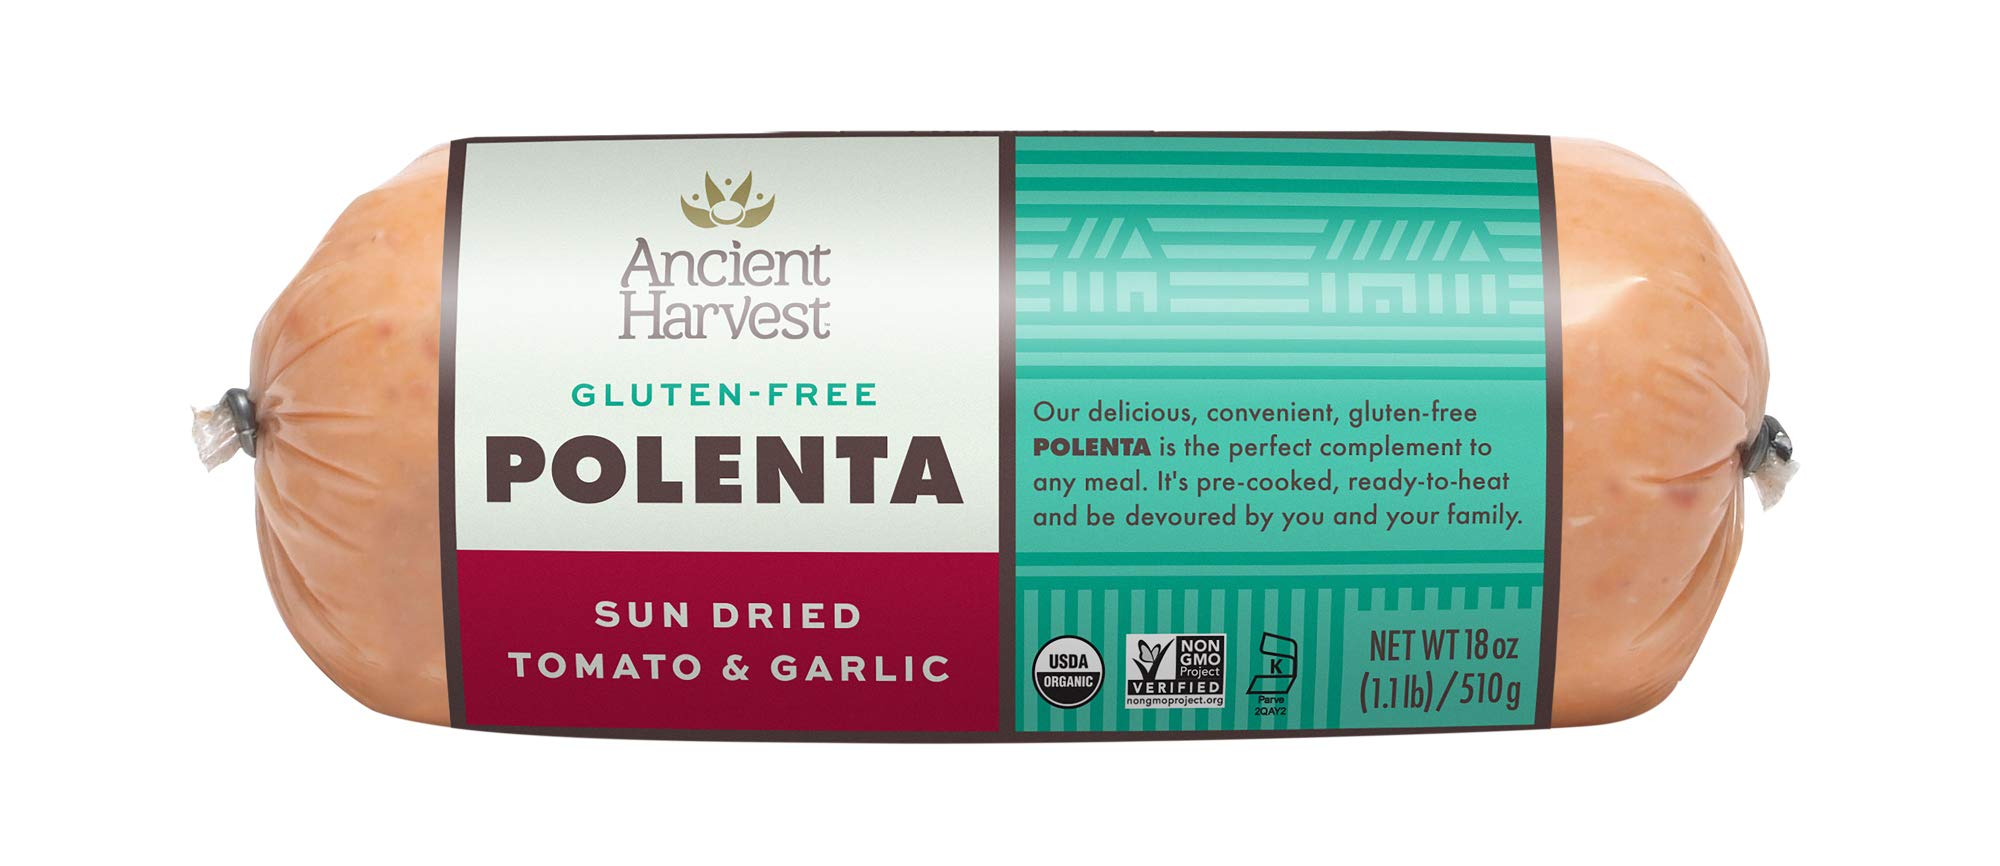 Ancient Harvest Certified Organic Polenta, Sundried Tomato & Garlic, Gluten Free, Ready To Heat And Serve, 18 oz (Pack of 12) by Food Merchant